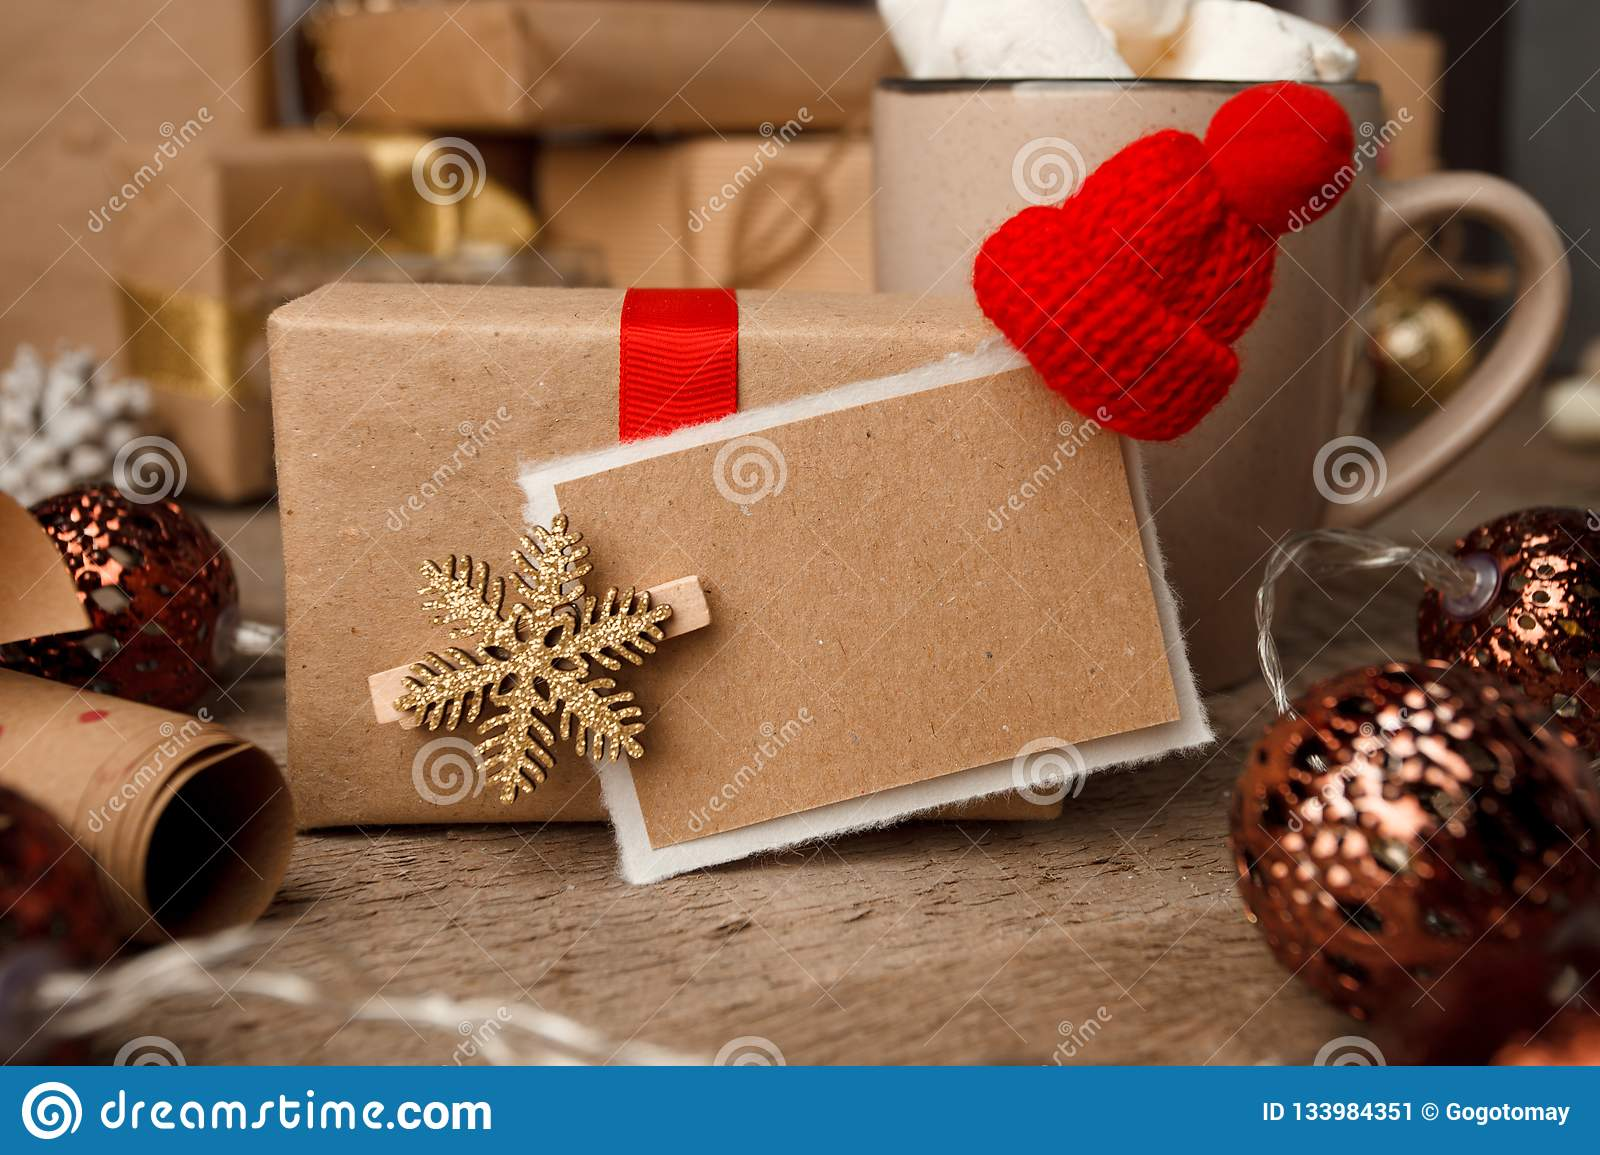 Christmas gifts with christmas decoration on vintage wooden background closeup, design template, copy space, front view.